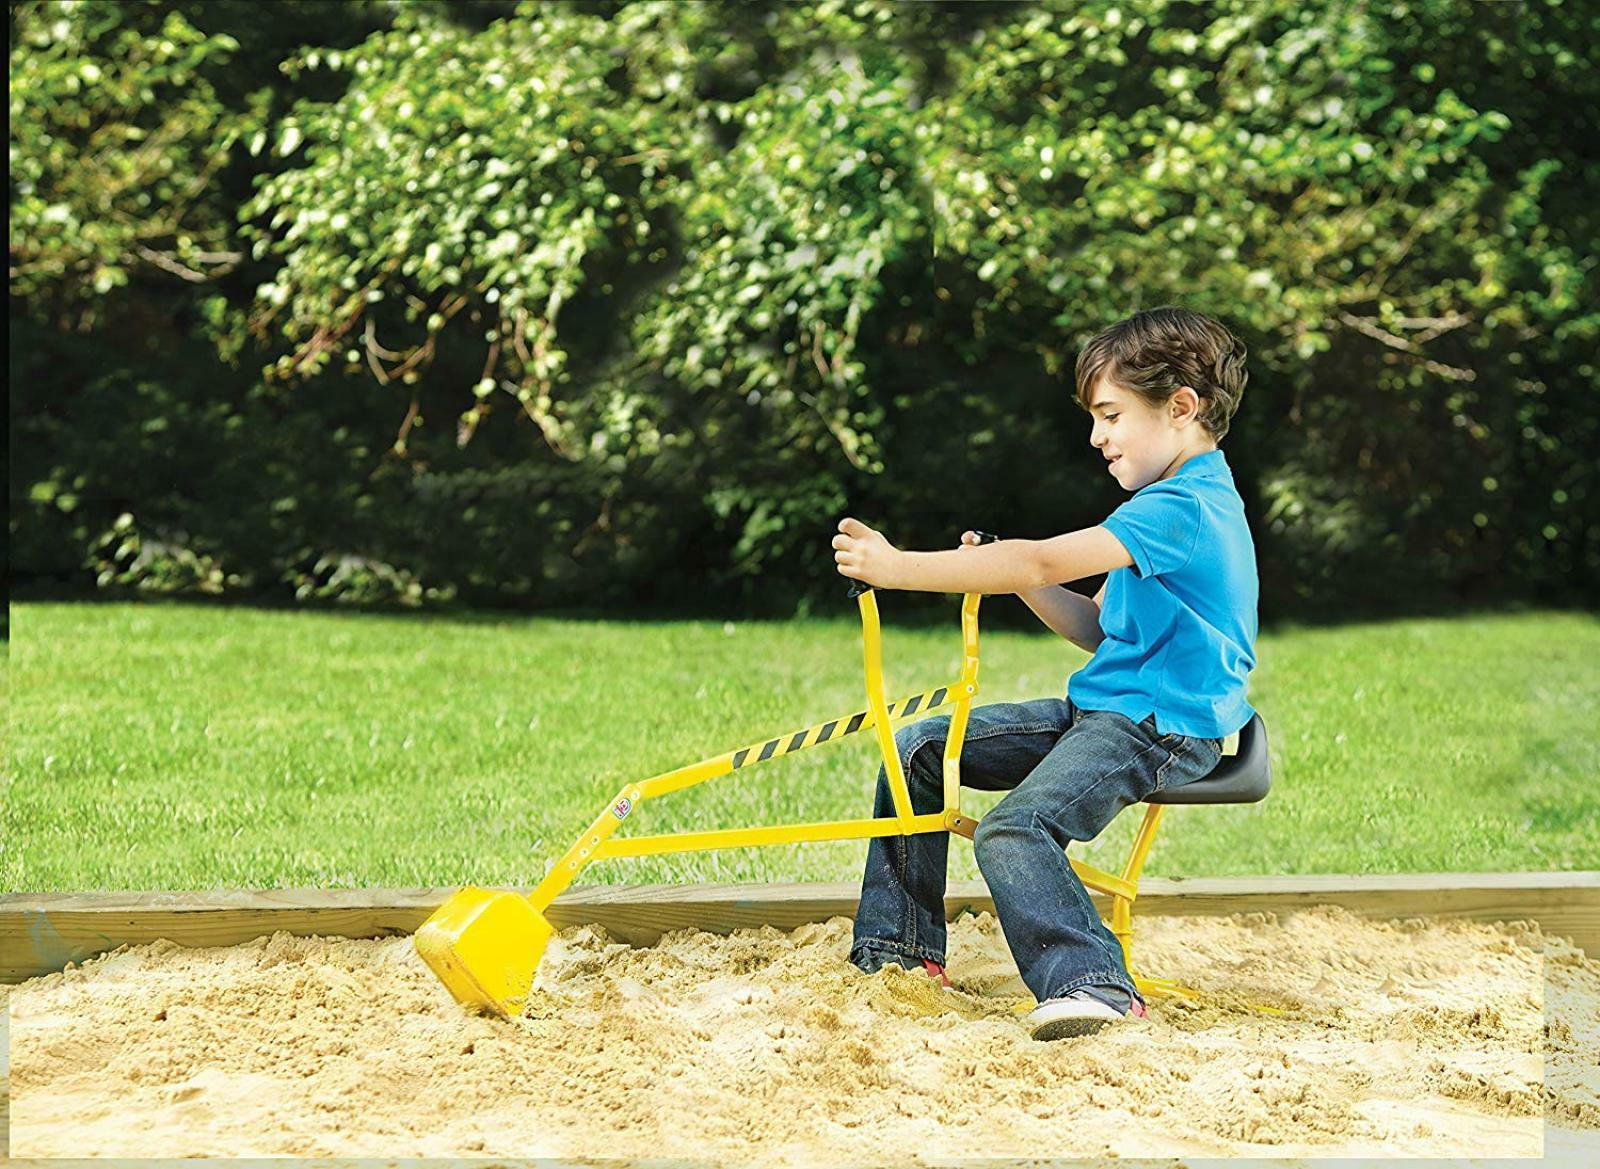 Excavator Toy Construction Kids Outdoor Sandbox Play Play Play Crane Toy Digging Ride On 0b35e3